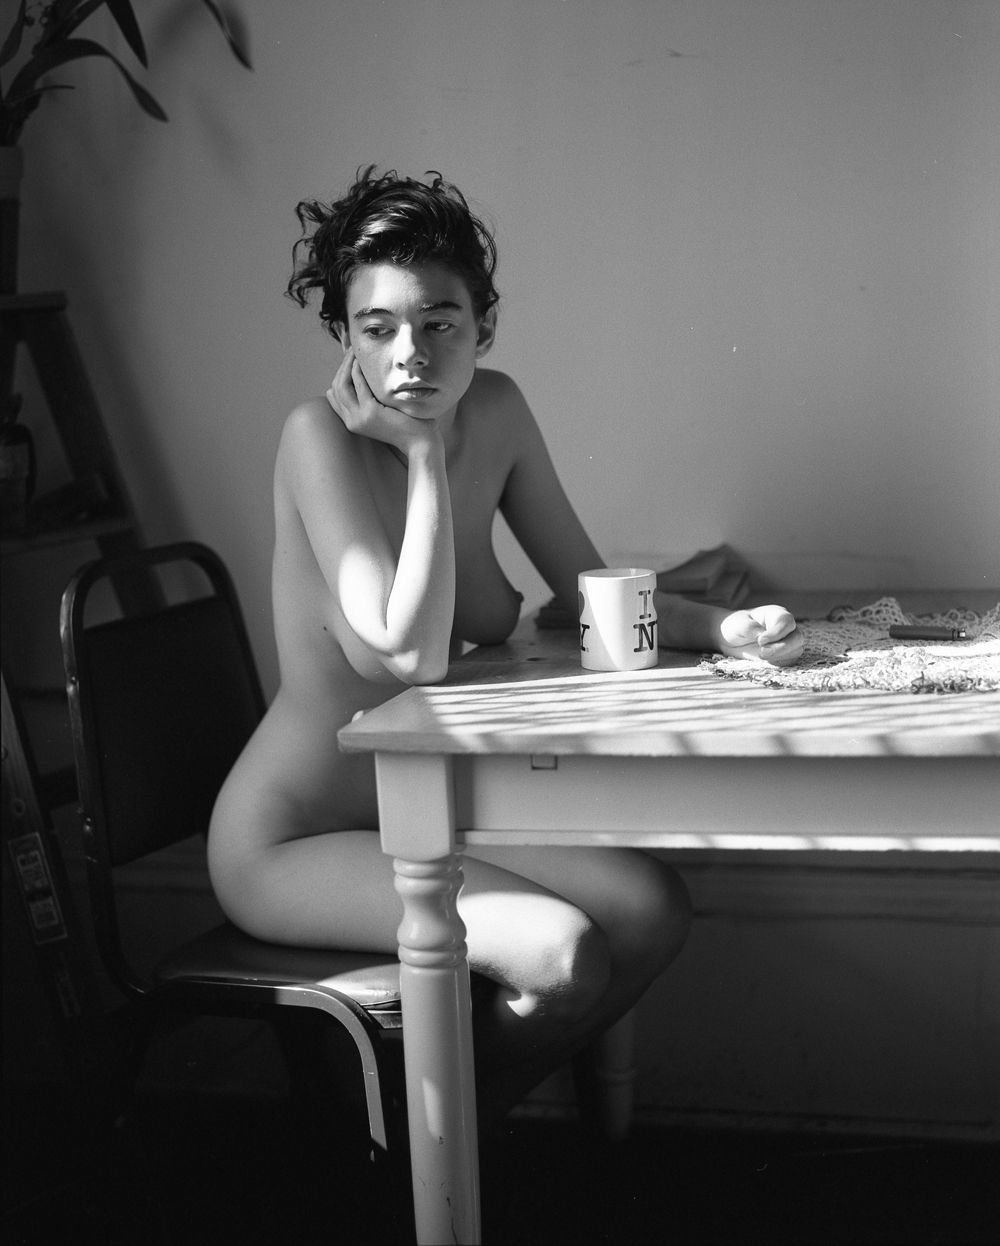 woman coffee Naked drinking